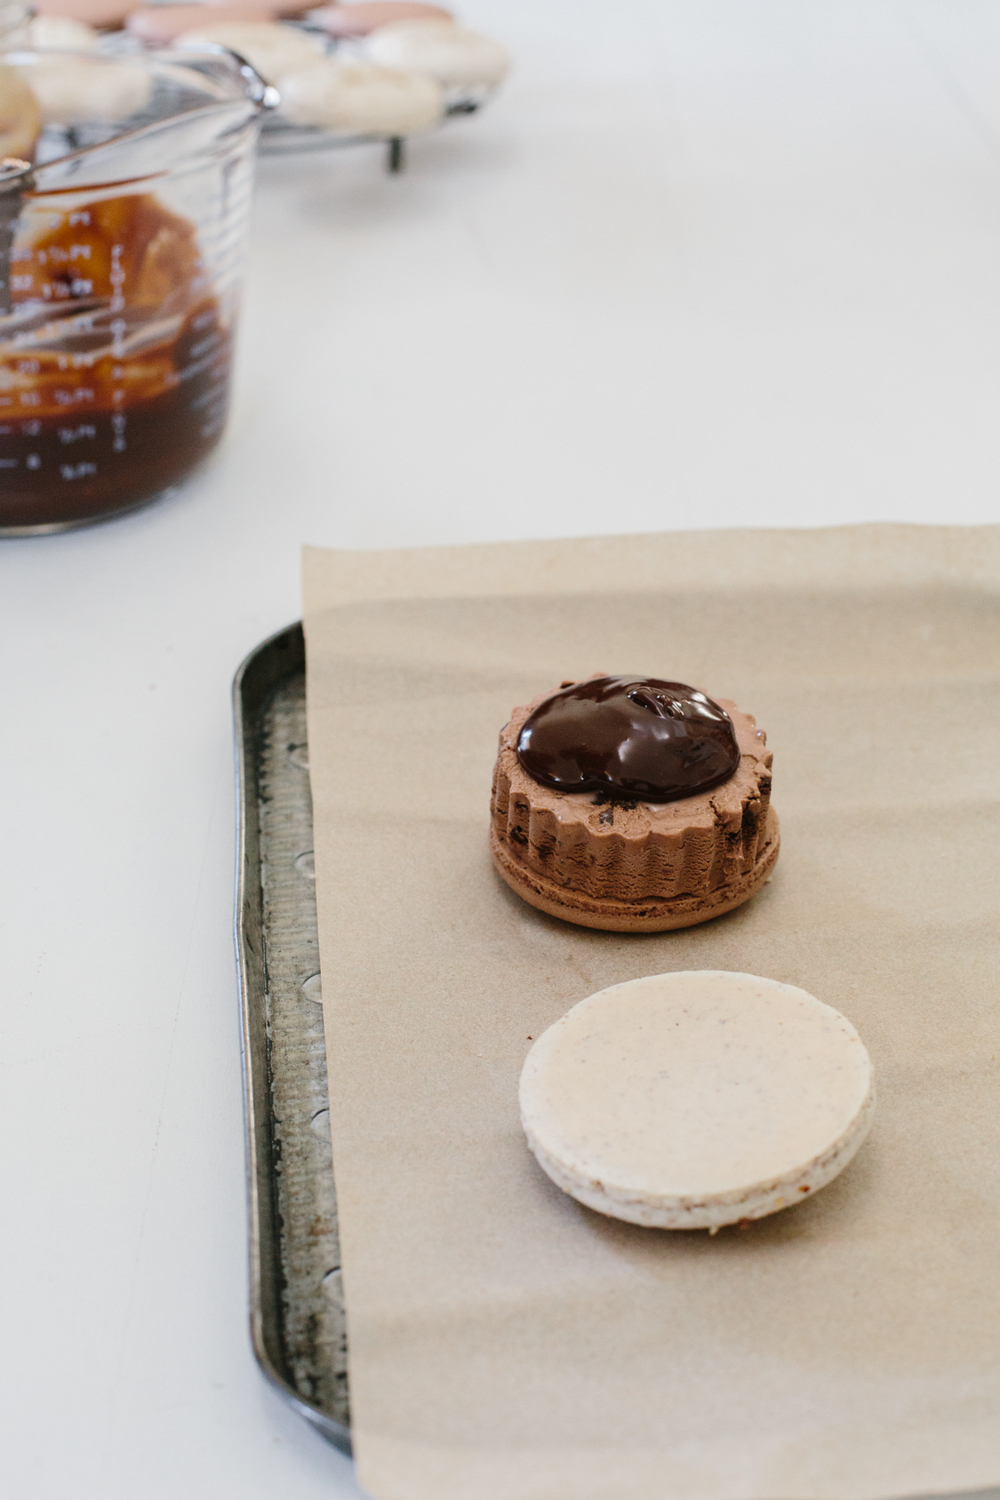 Meet Sally Boyle / Eat Macaron Ice cream Sandwiches | Erika Rax